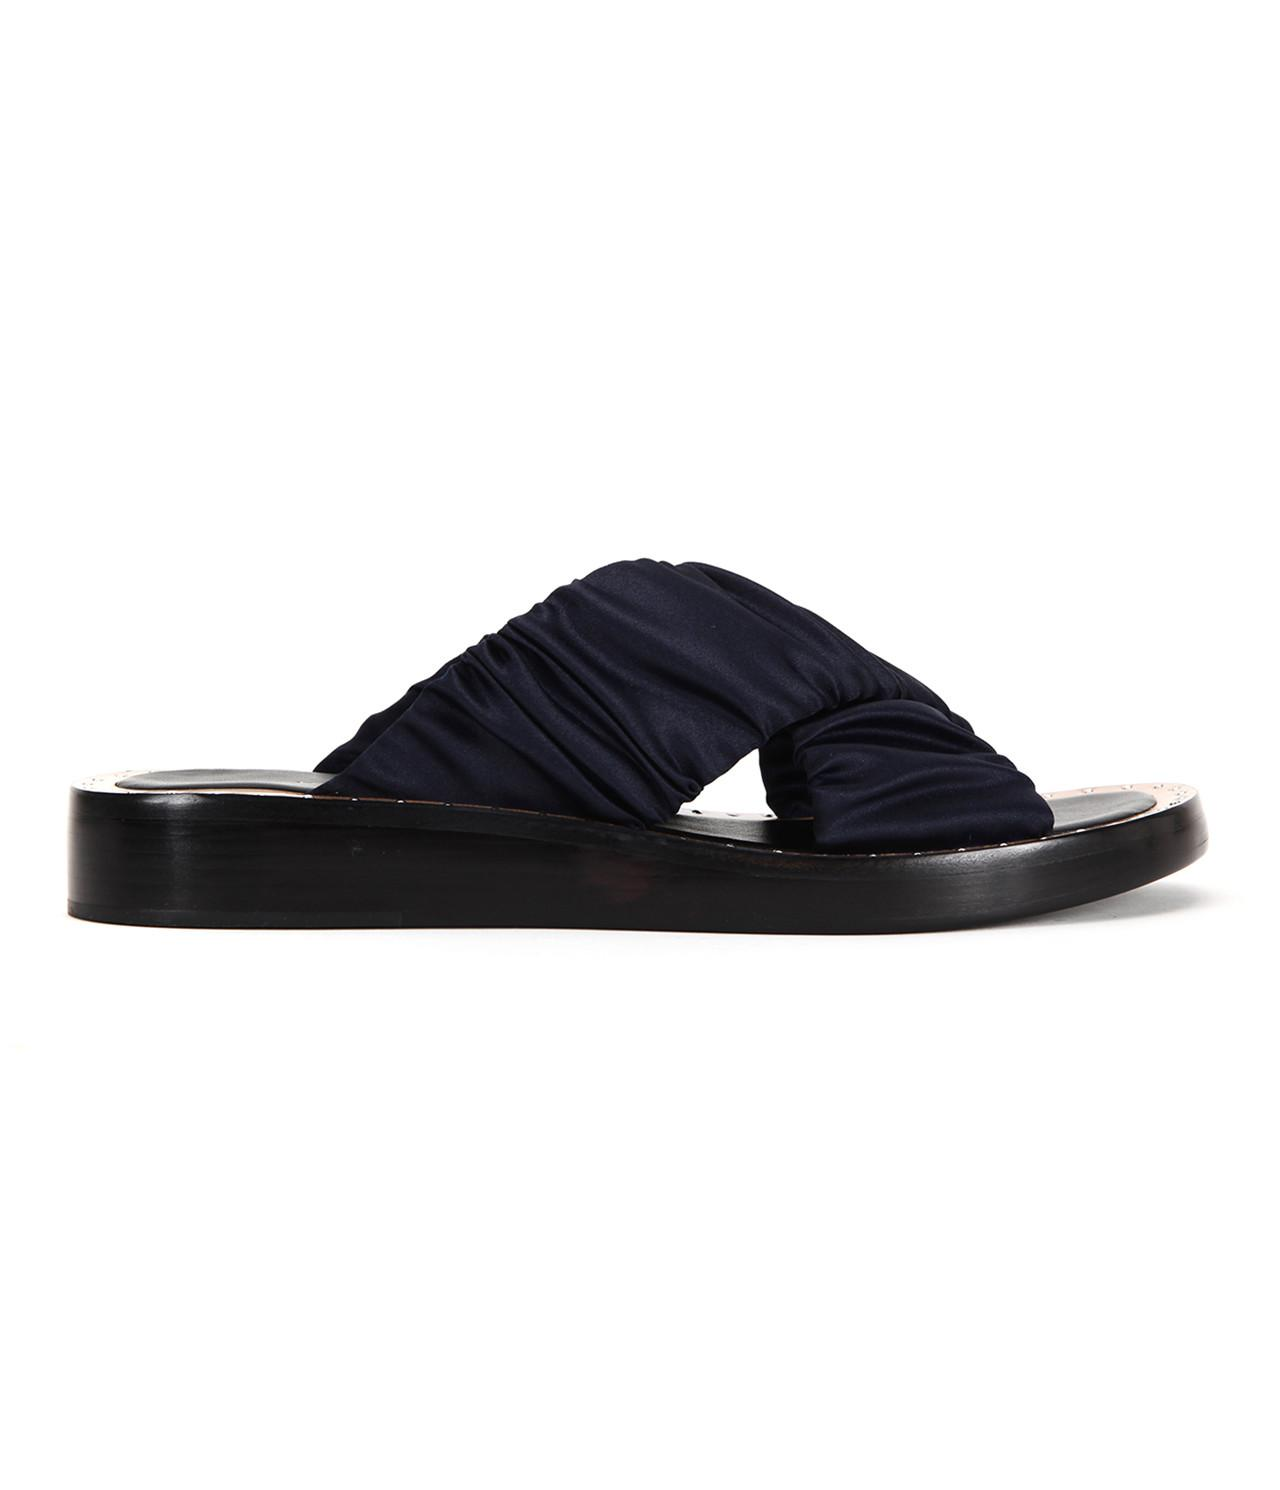 3.1 Phillip Lim. Women's Blue Nagano Flat Crisscross Slide